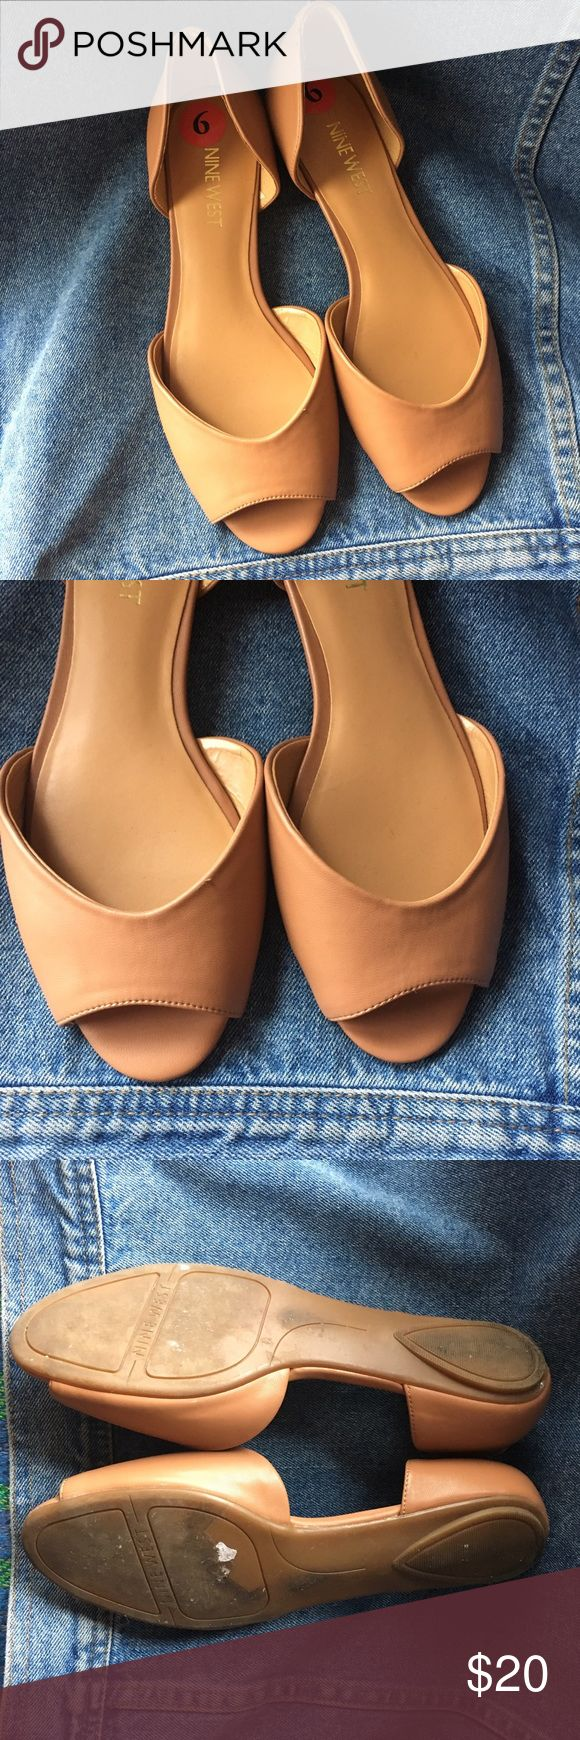 Nine West Penelope Open Toe Flat Woman's 6 Camel In great condition. Check out our closet for great bundle offers! Nine West Shoes Flats & Loafers